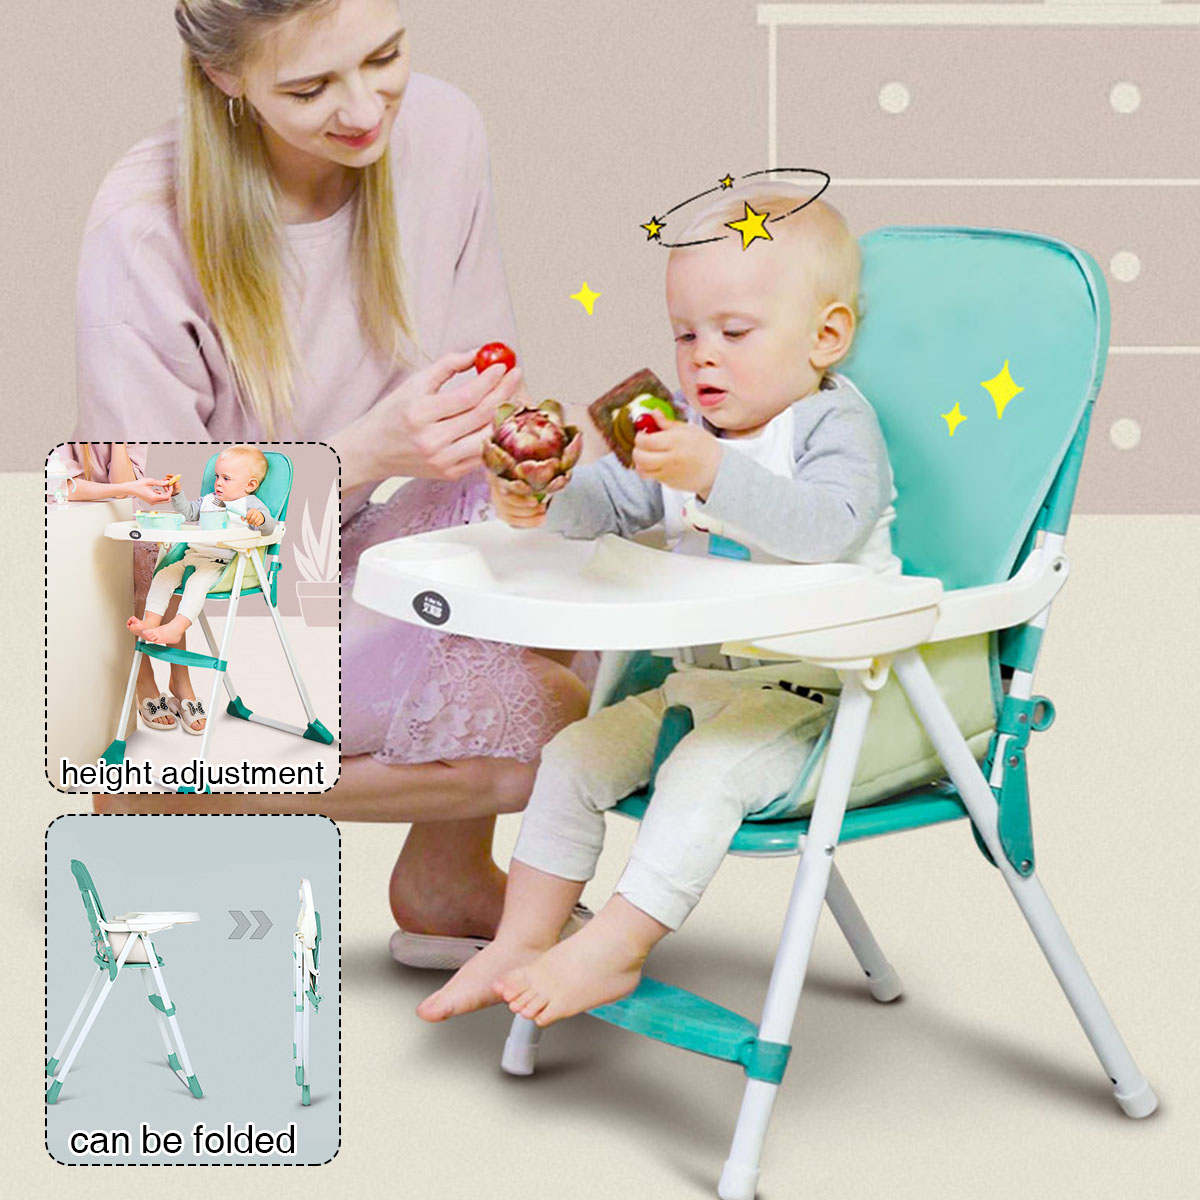 Portable Kids Highchair Feeding Dining Chair Double Tables Macaron Multi-function Height-adjust Folding Chairs Soft Cushion Seat